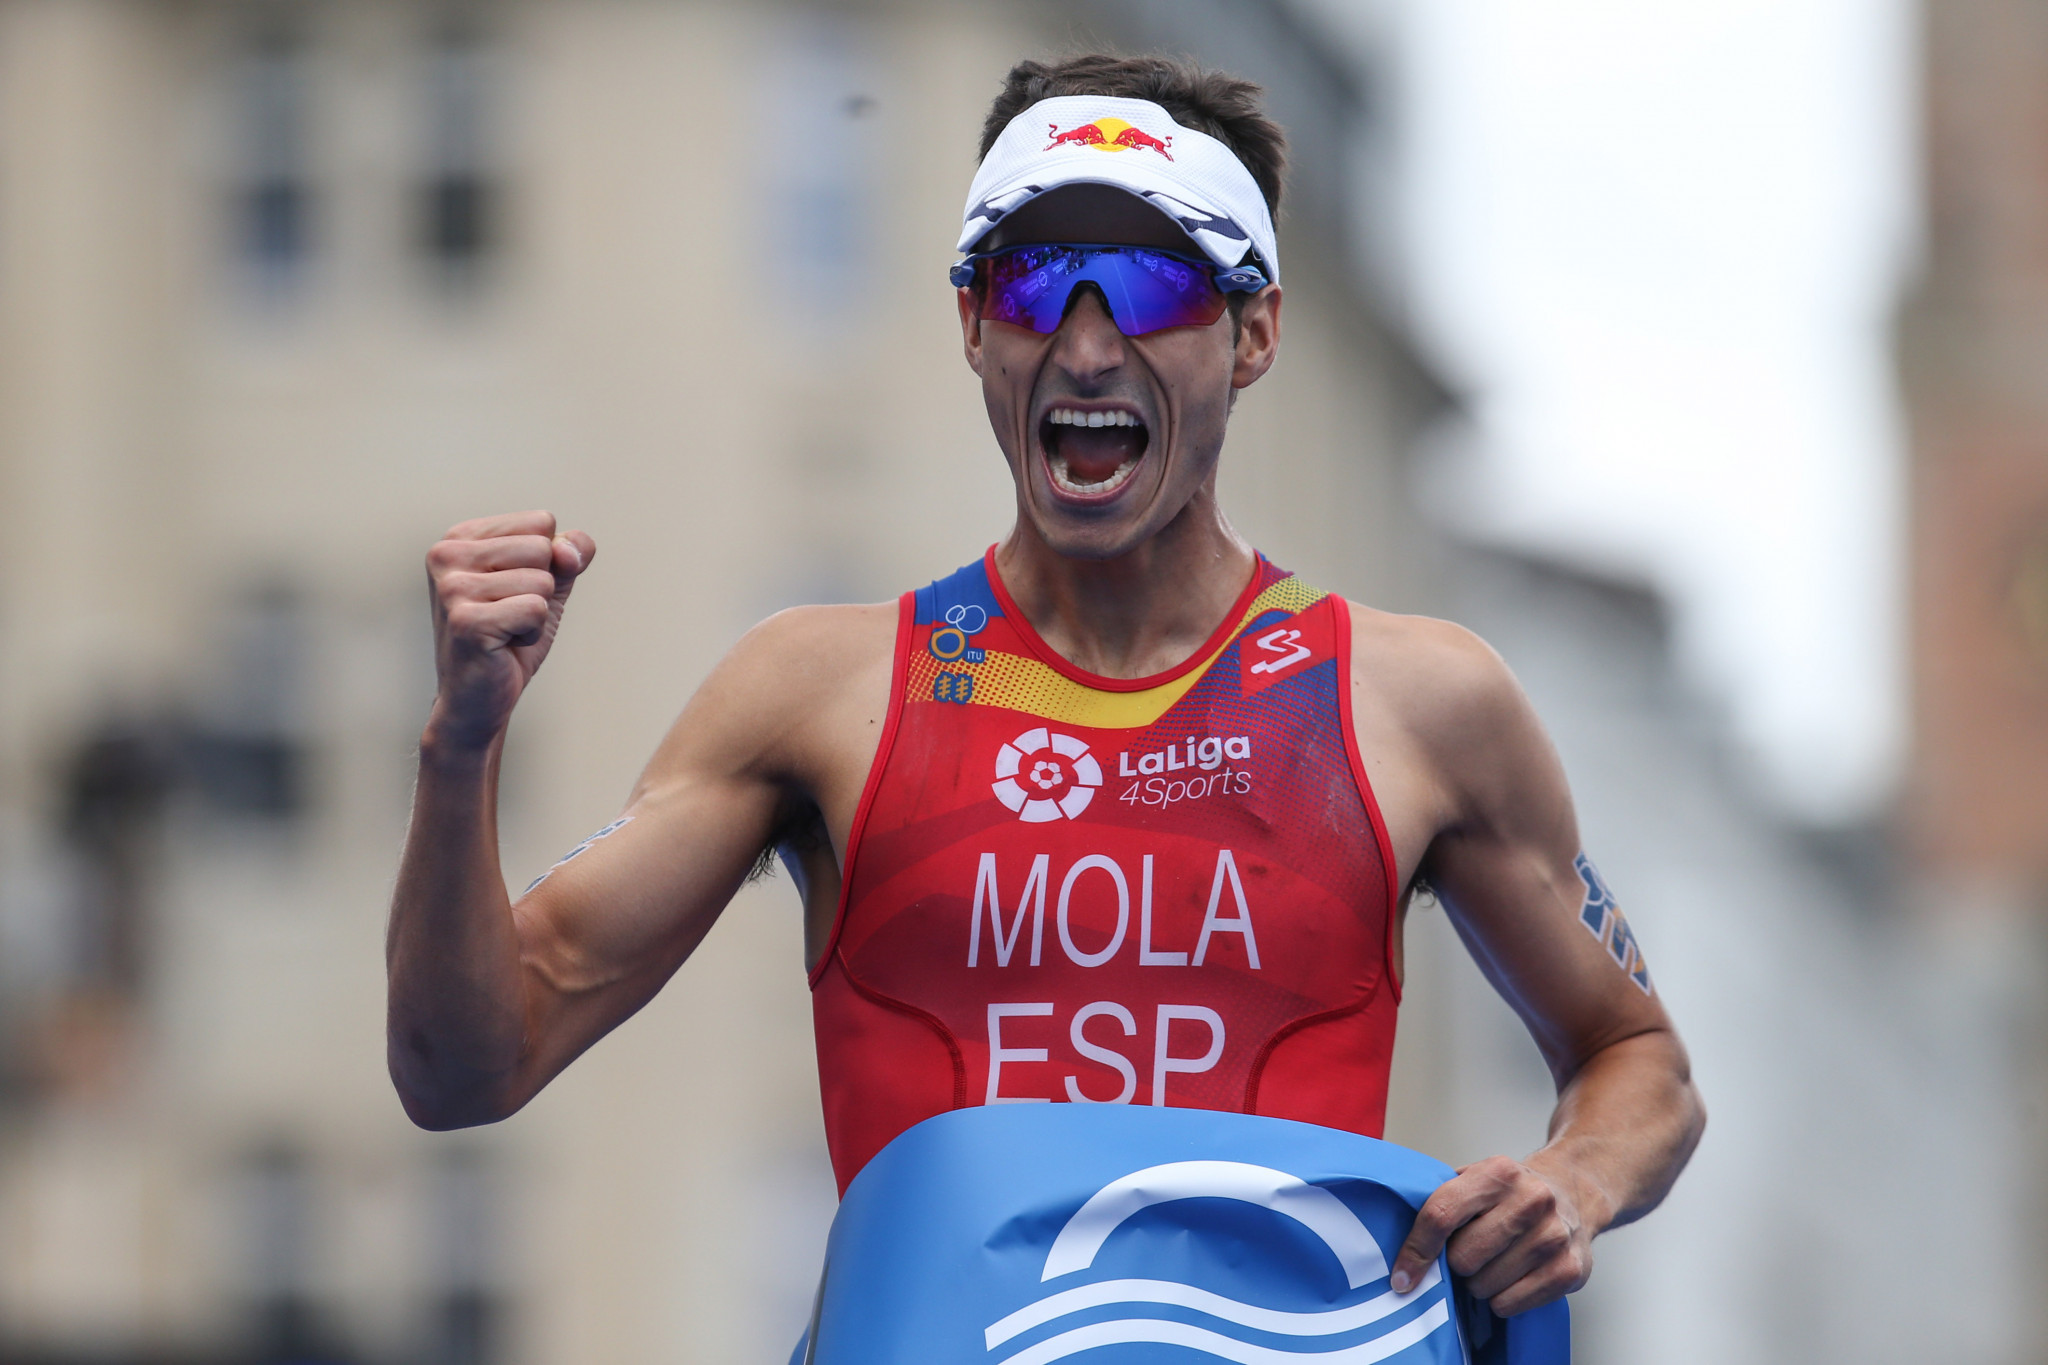 Mola wins World Triathlon Series event in Hamburg for third year in a row